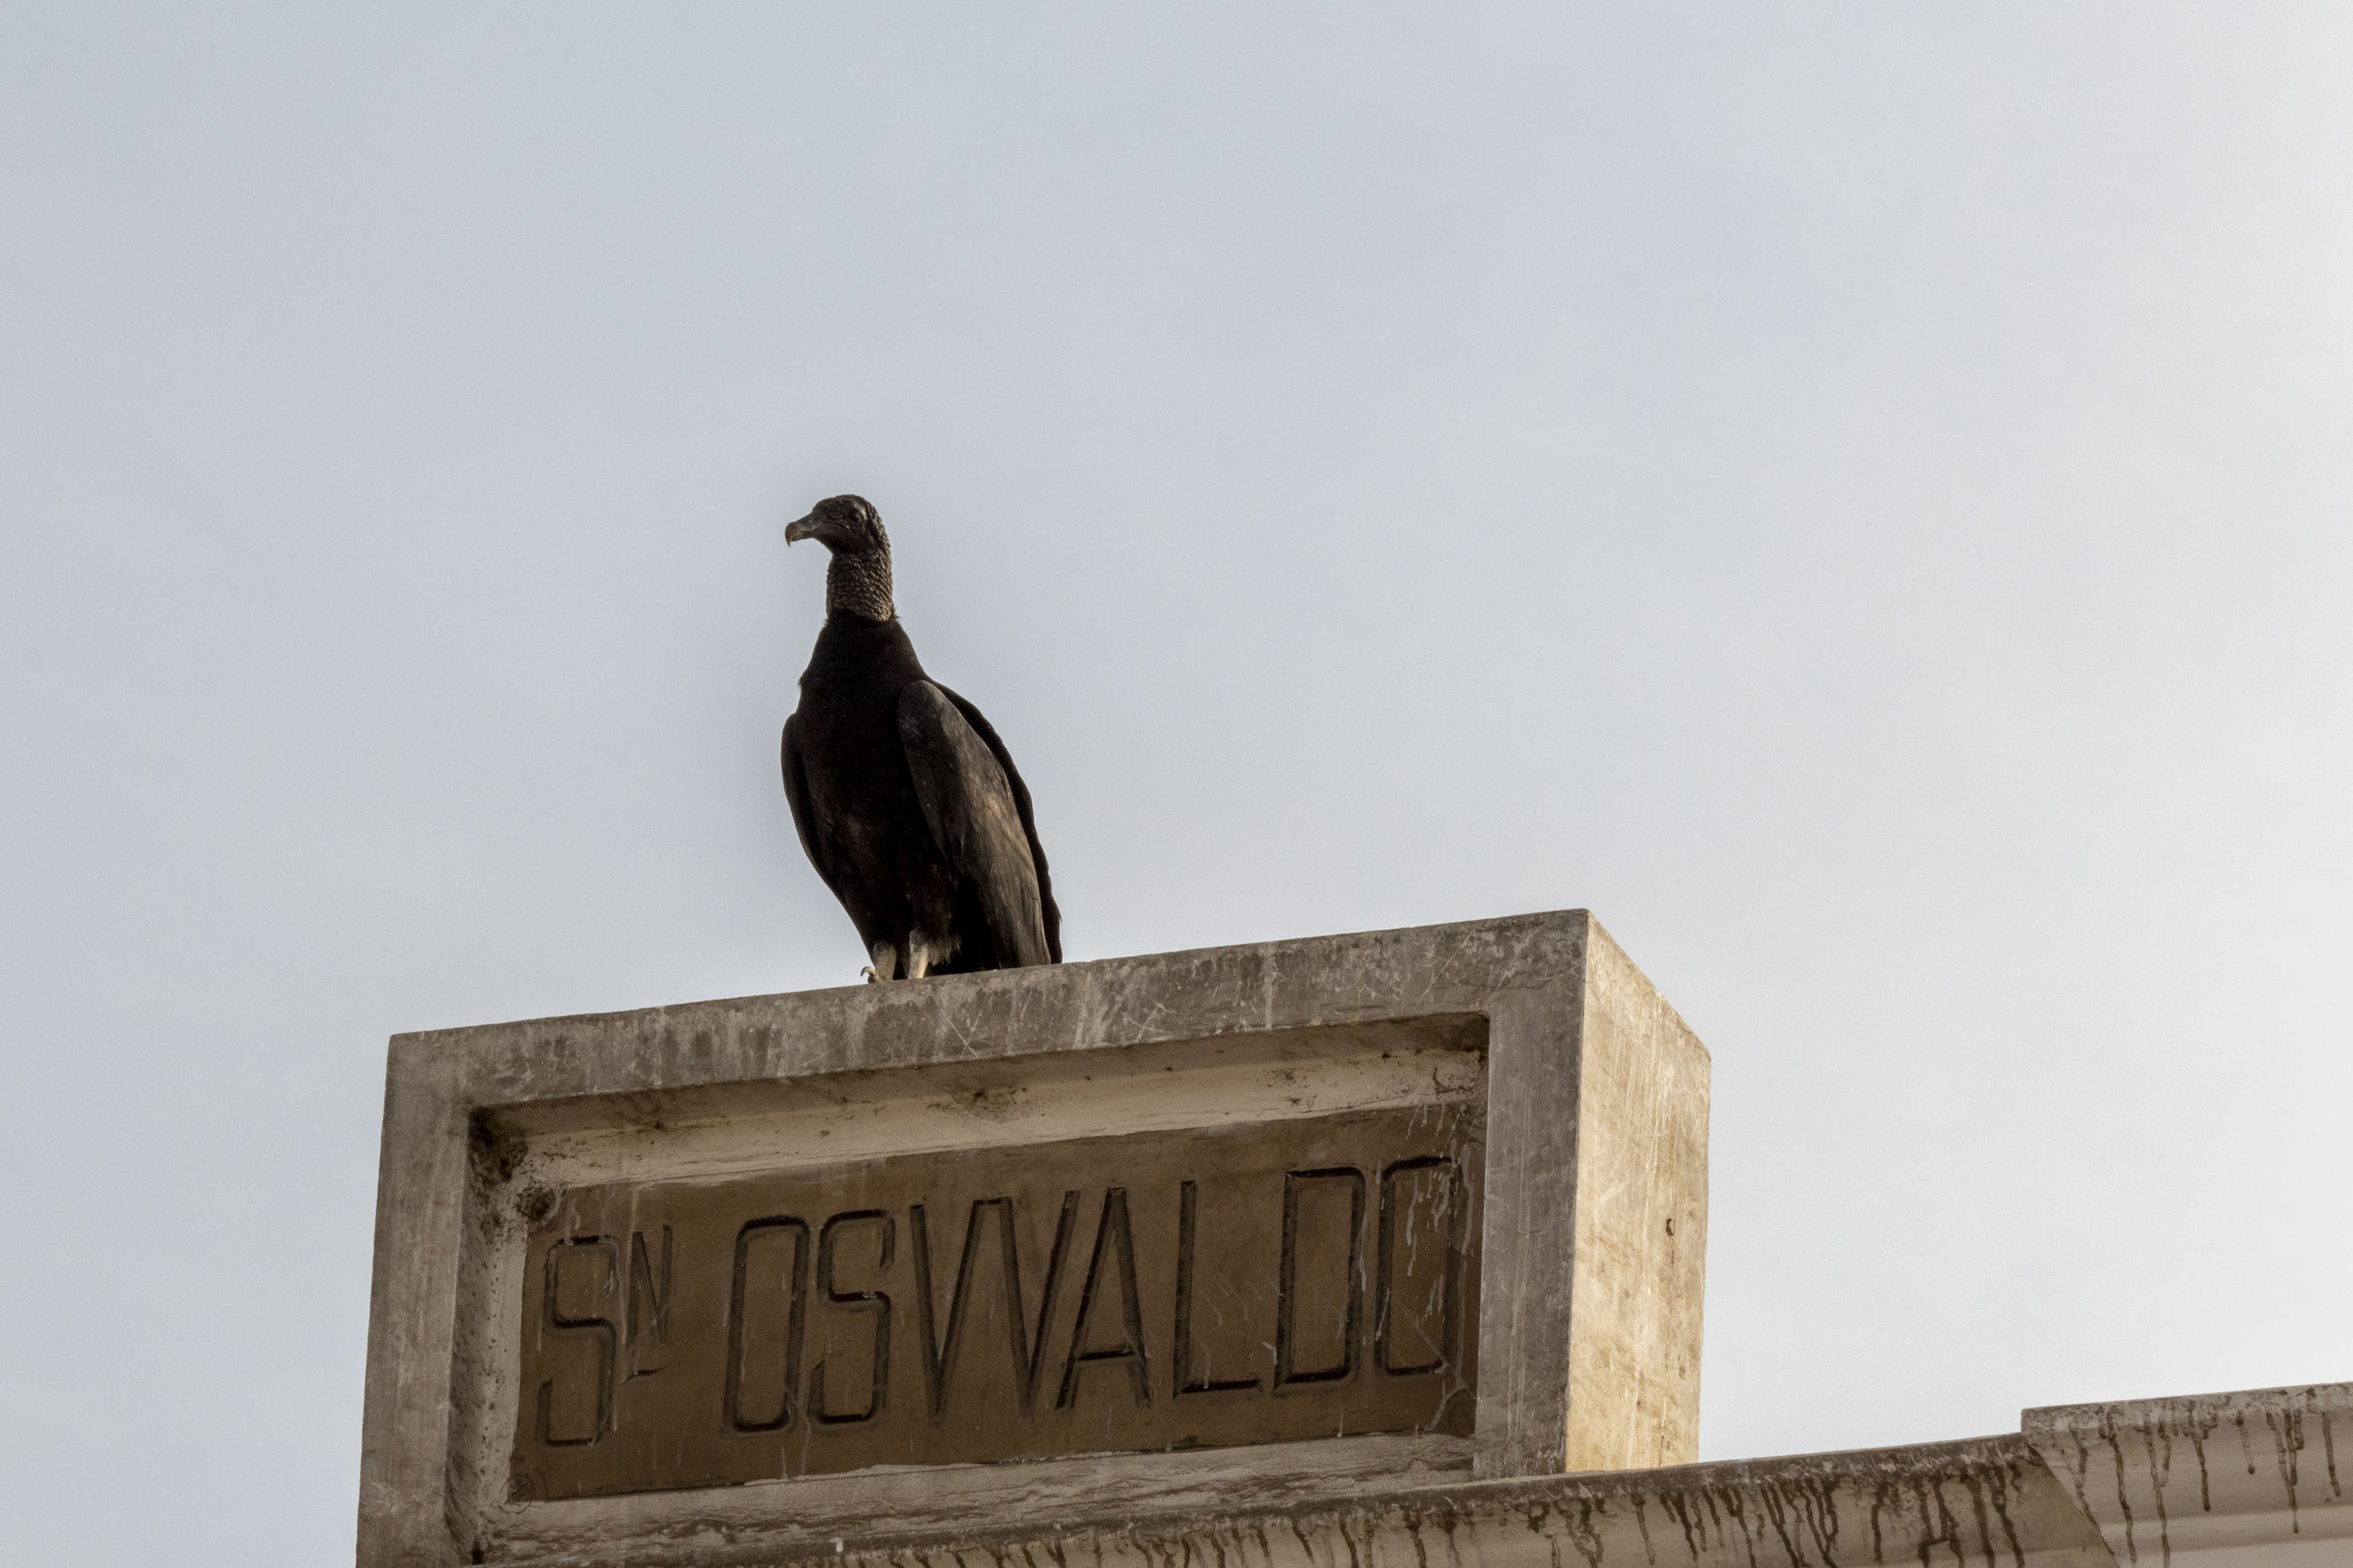 animal themes, bird, animal, vertebrate, animal wildlife, animals in the wild, text, perching, sky, low angle view, one animal, western script, no people, day, communication, nature, architecture, copy space, outdoors, clear sky